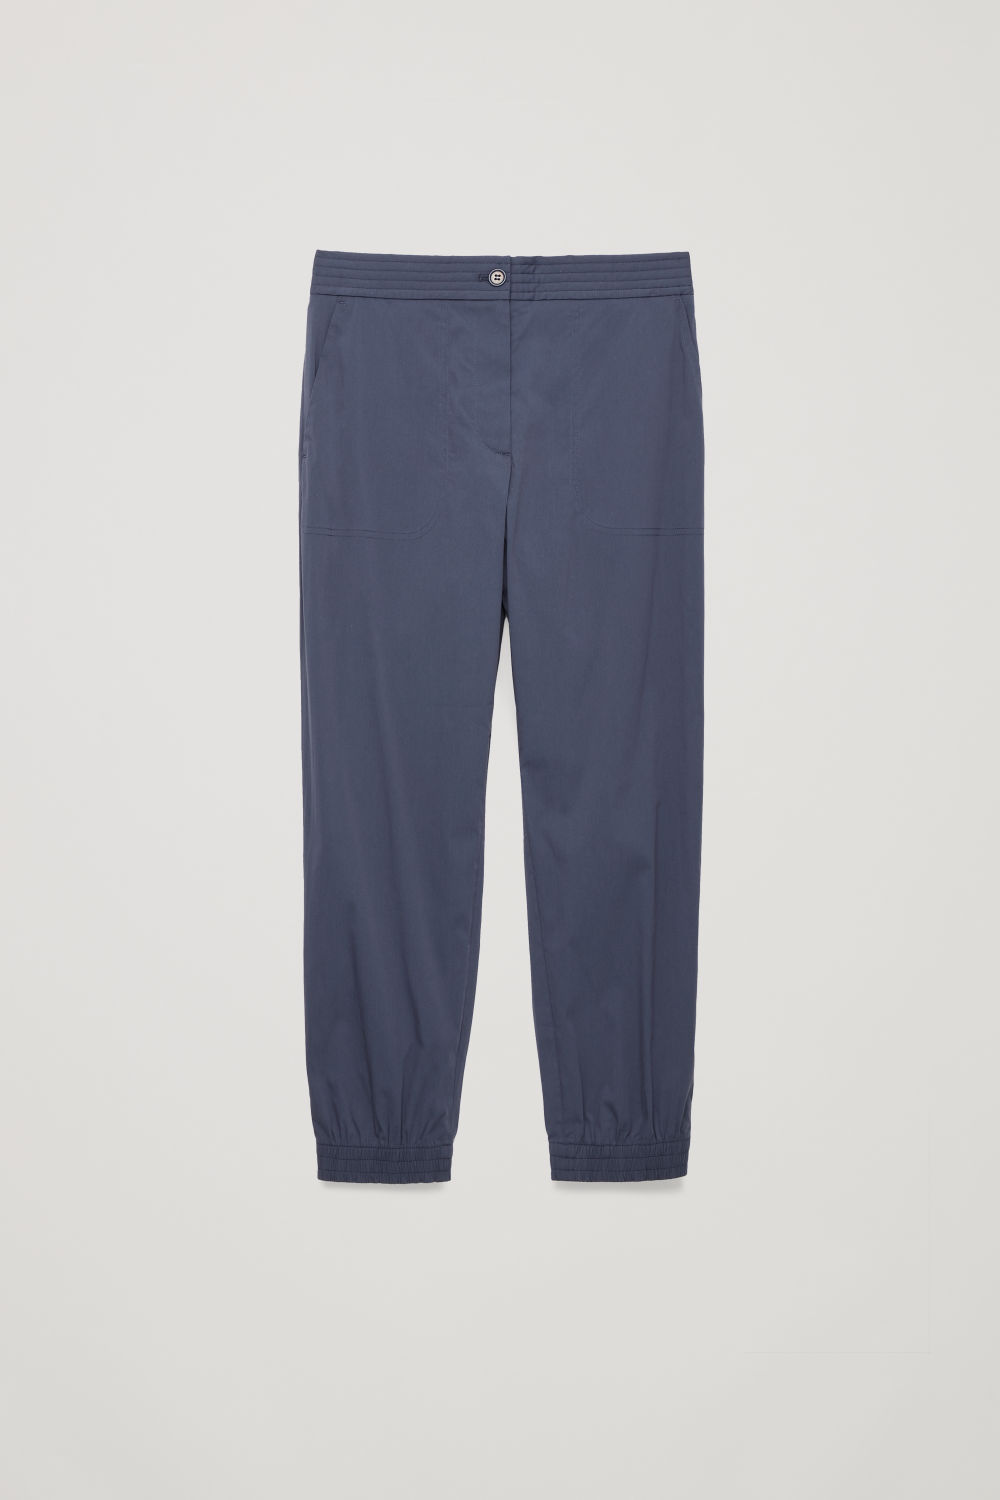 PADDED-WAIST COTTON TROUSERS